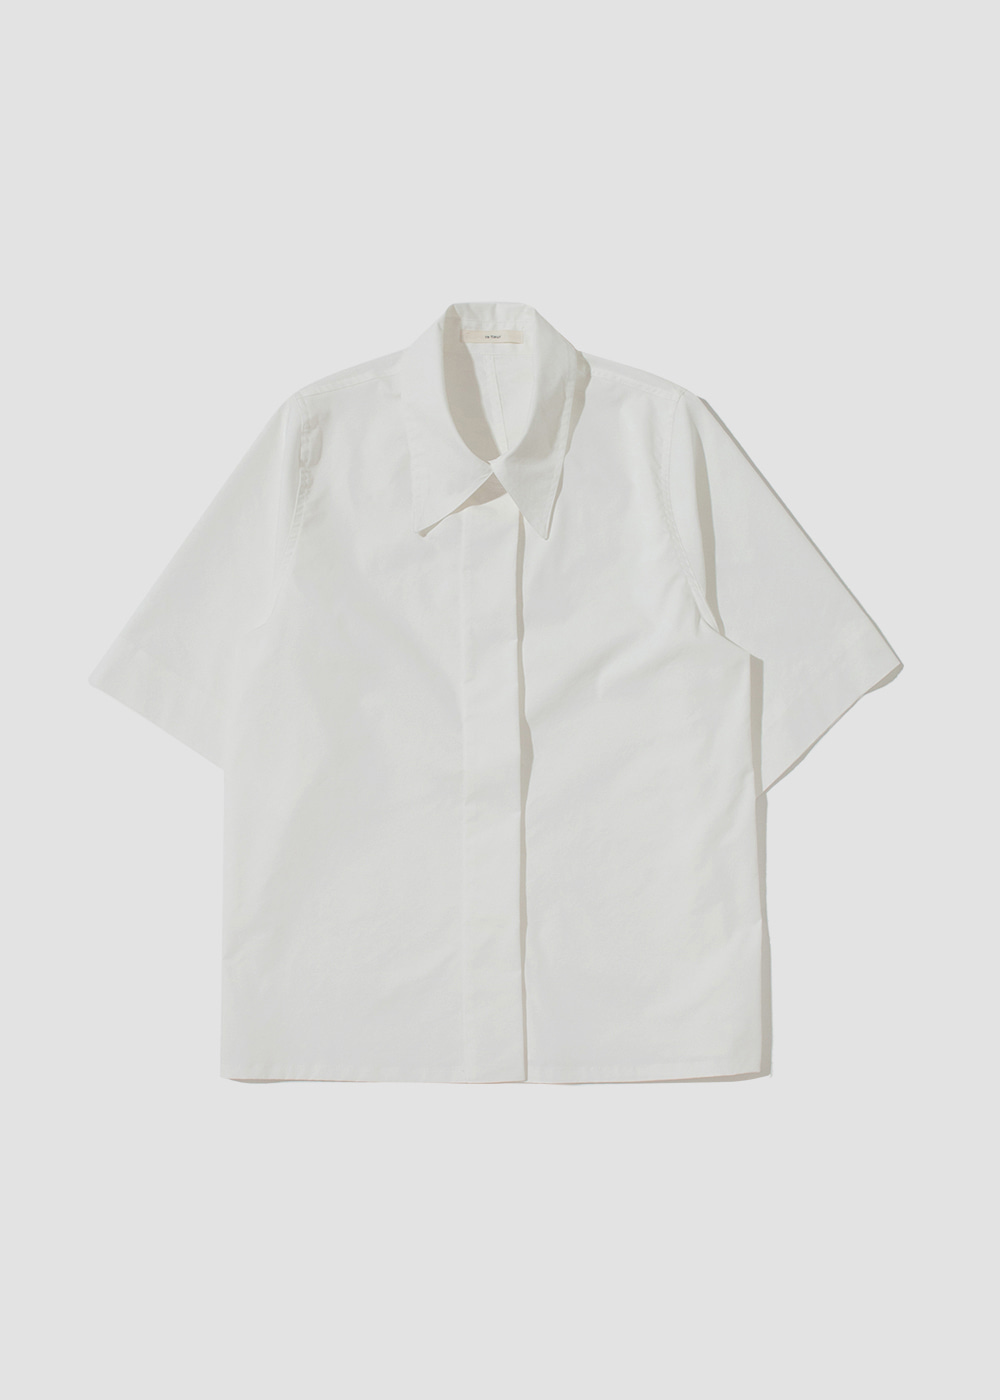 [RE FLEUR] Big Collar Shirt